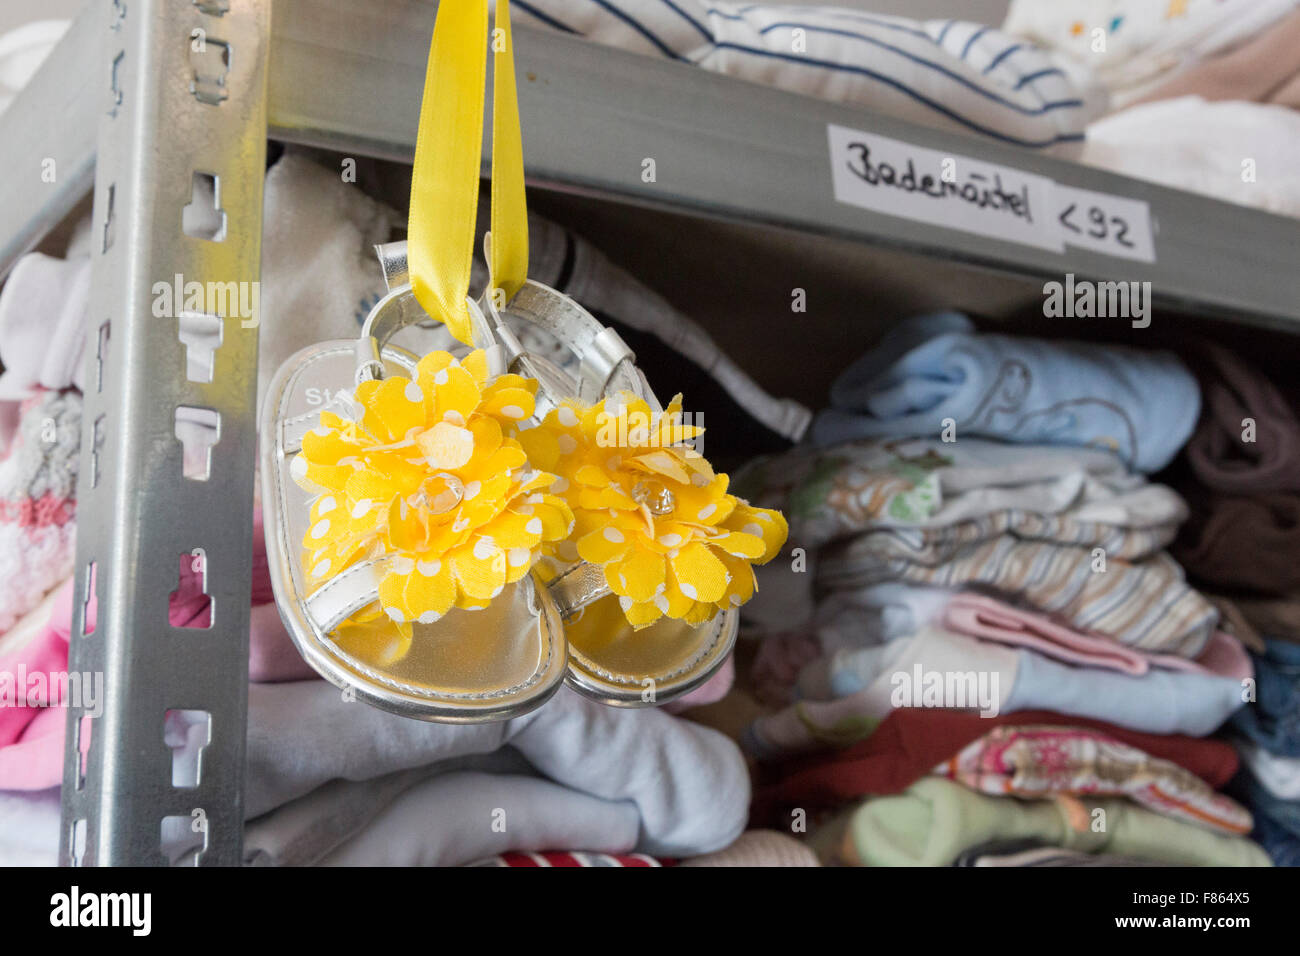 Donated children's clothing and shoes. Supporters of relief organisation Willkommen in Mülheim celebrate - Stock Image